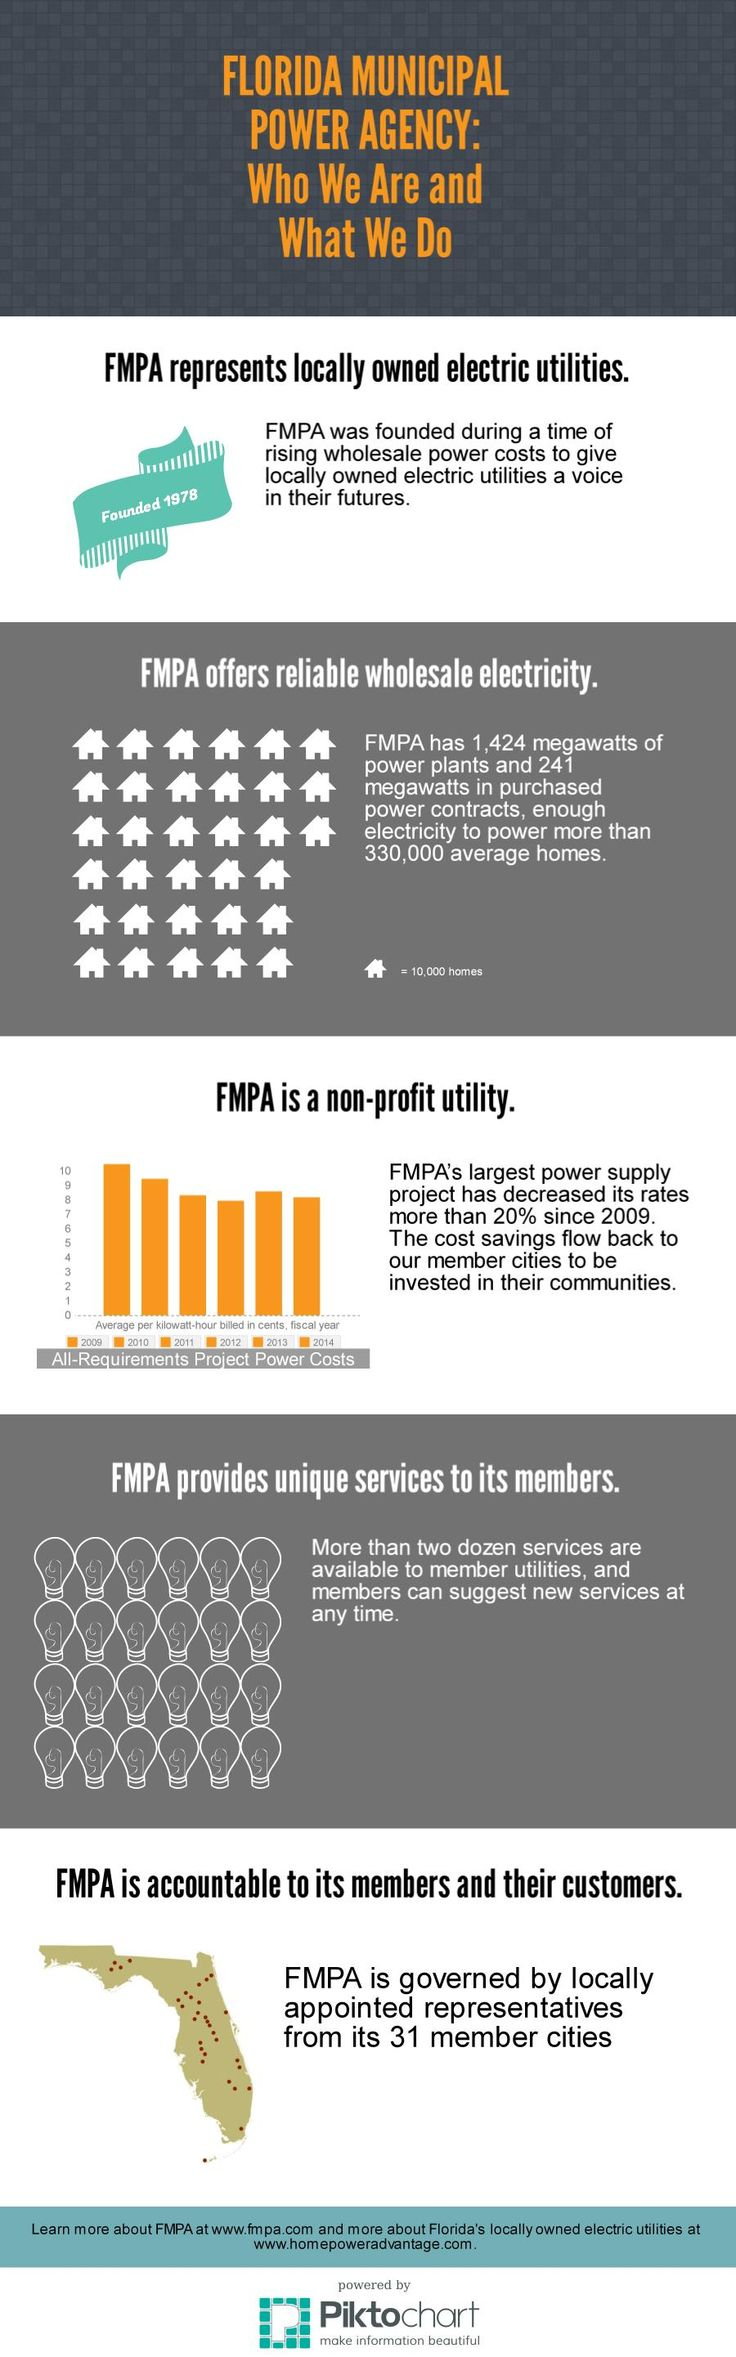 infographic that describes to the public the value of municipal utilities working together through joint action. These benefits include: -Decreasing rates more than 20% since 2009 -Managing the resources to power more than 330,000 average homes -Offering more than two dozen member services